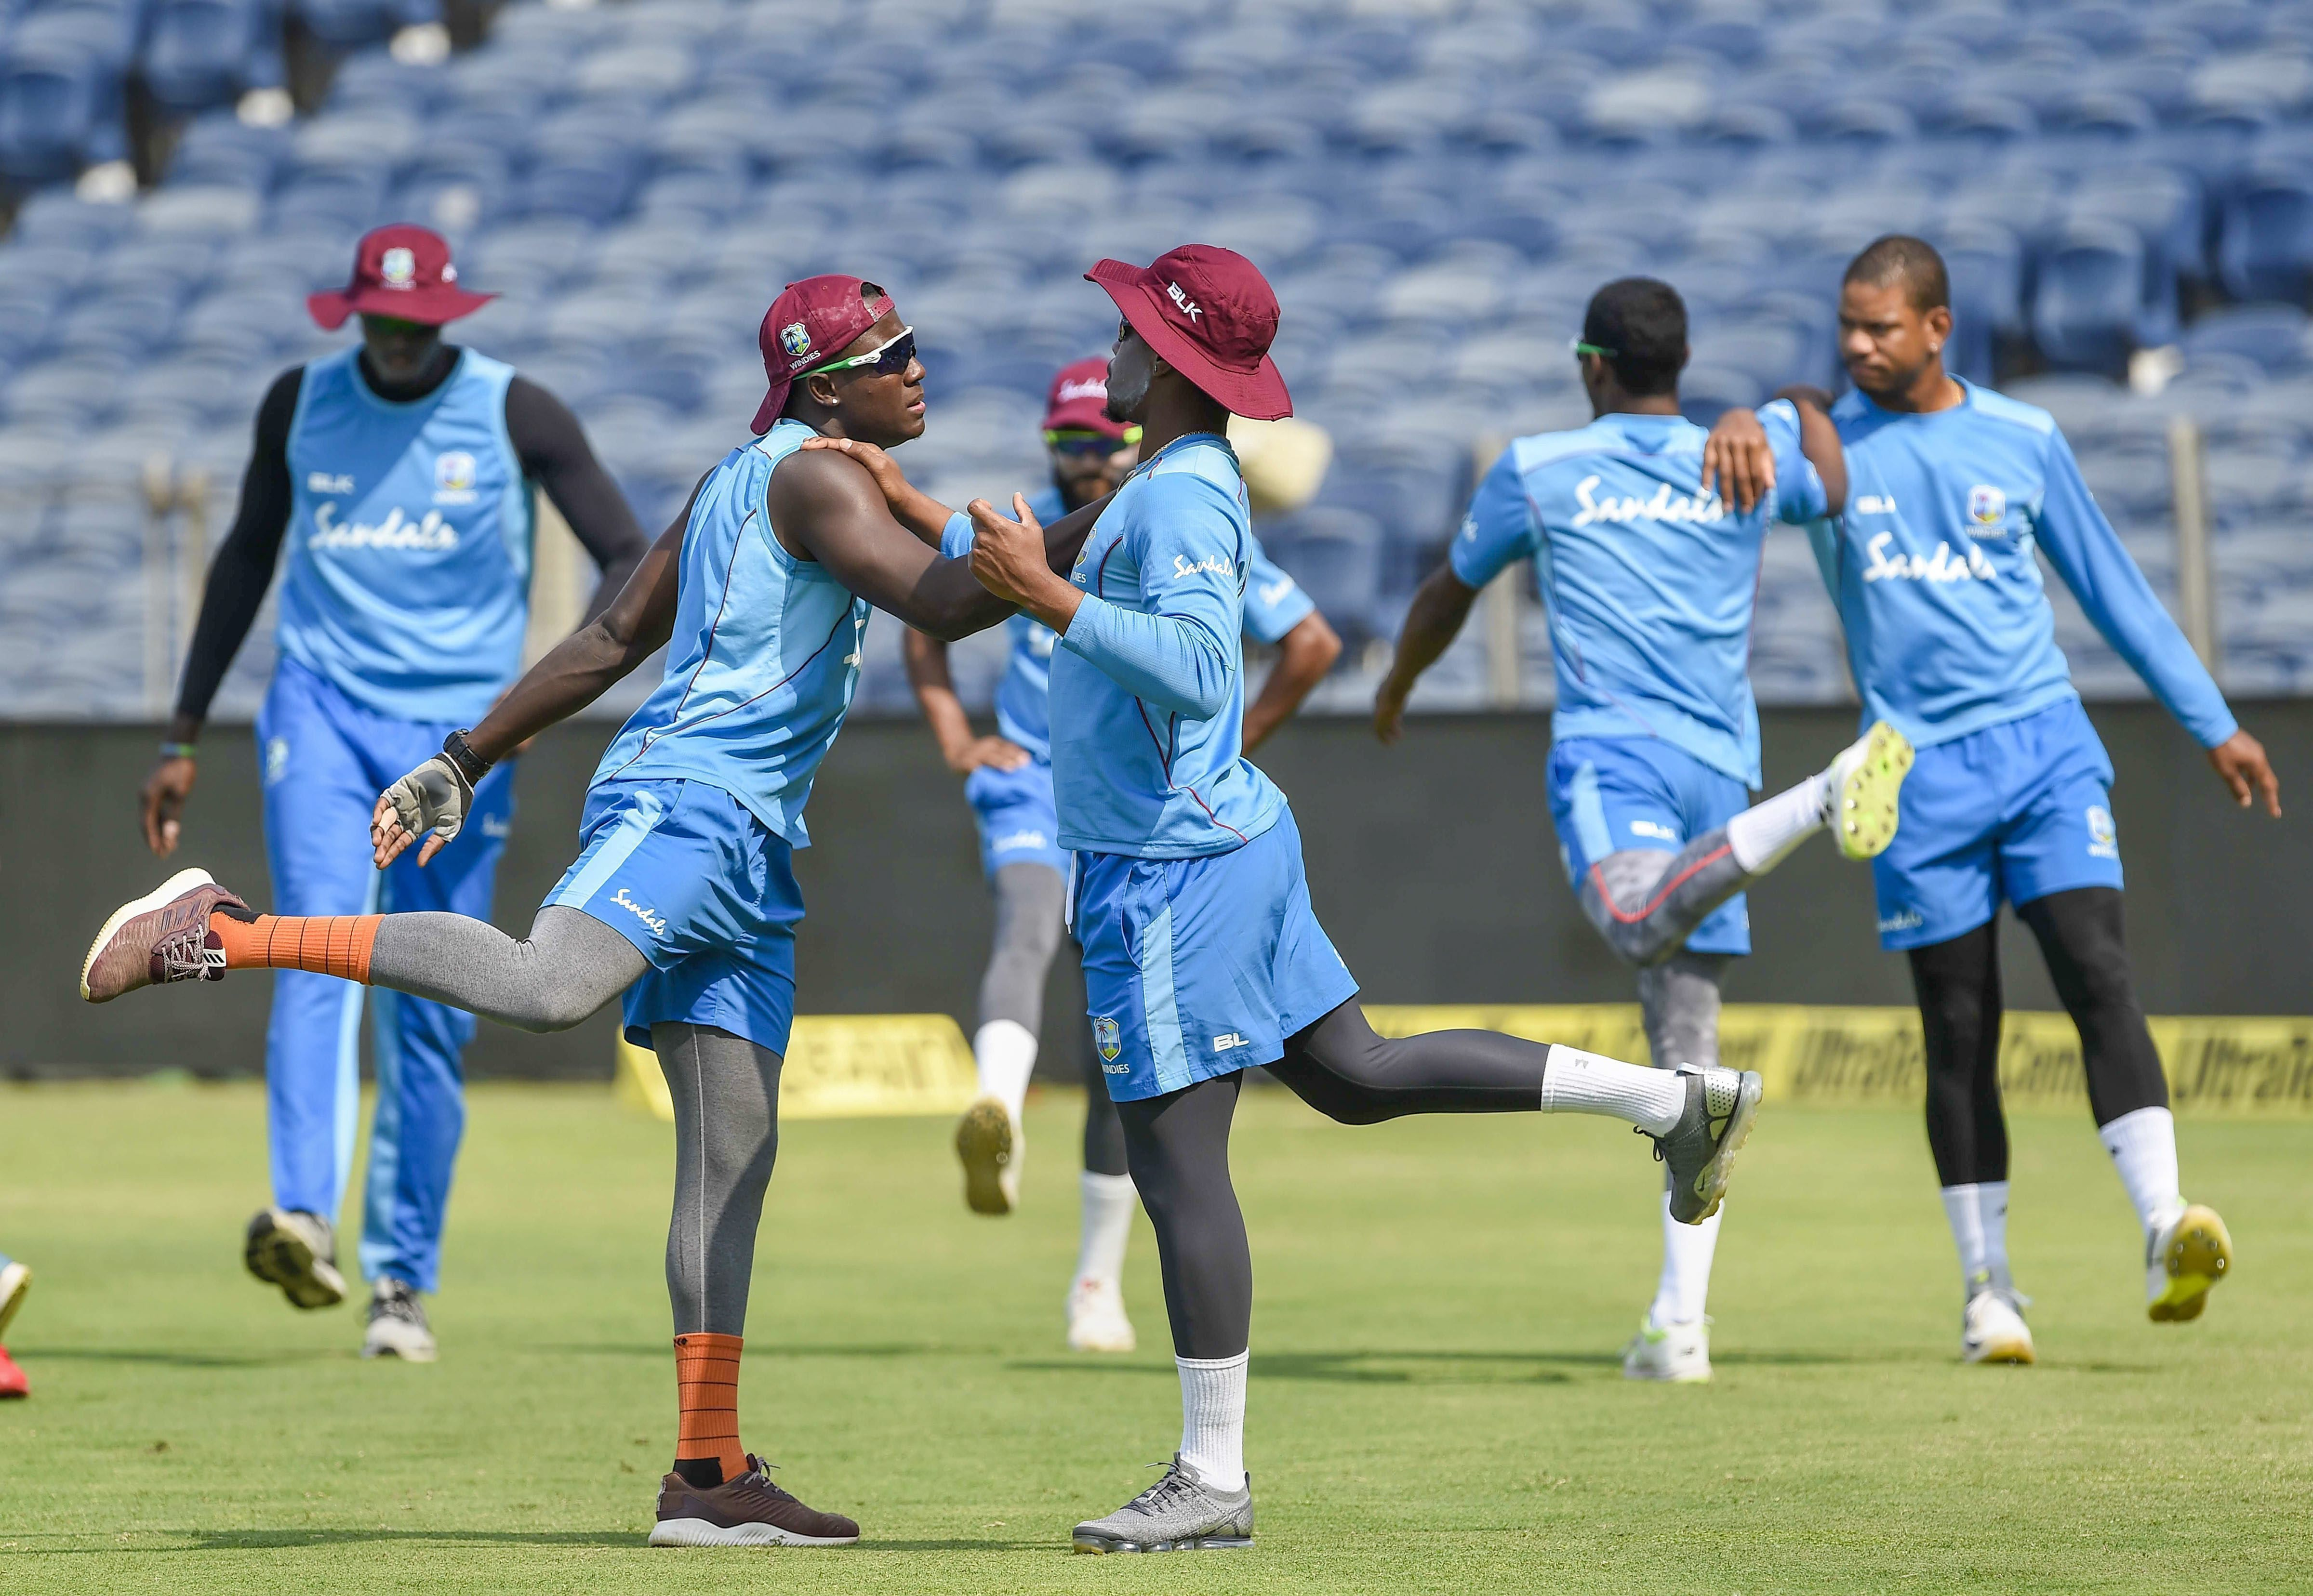 West Indies cricketers warm up during a practice session at the MCA Stadium in Pune - PTI